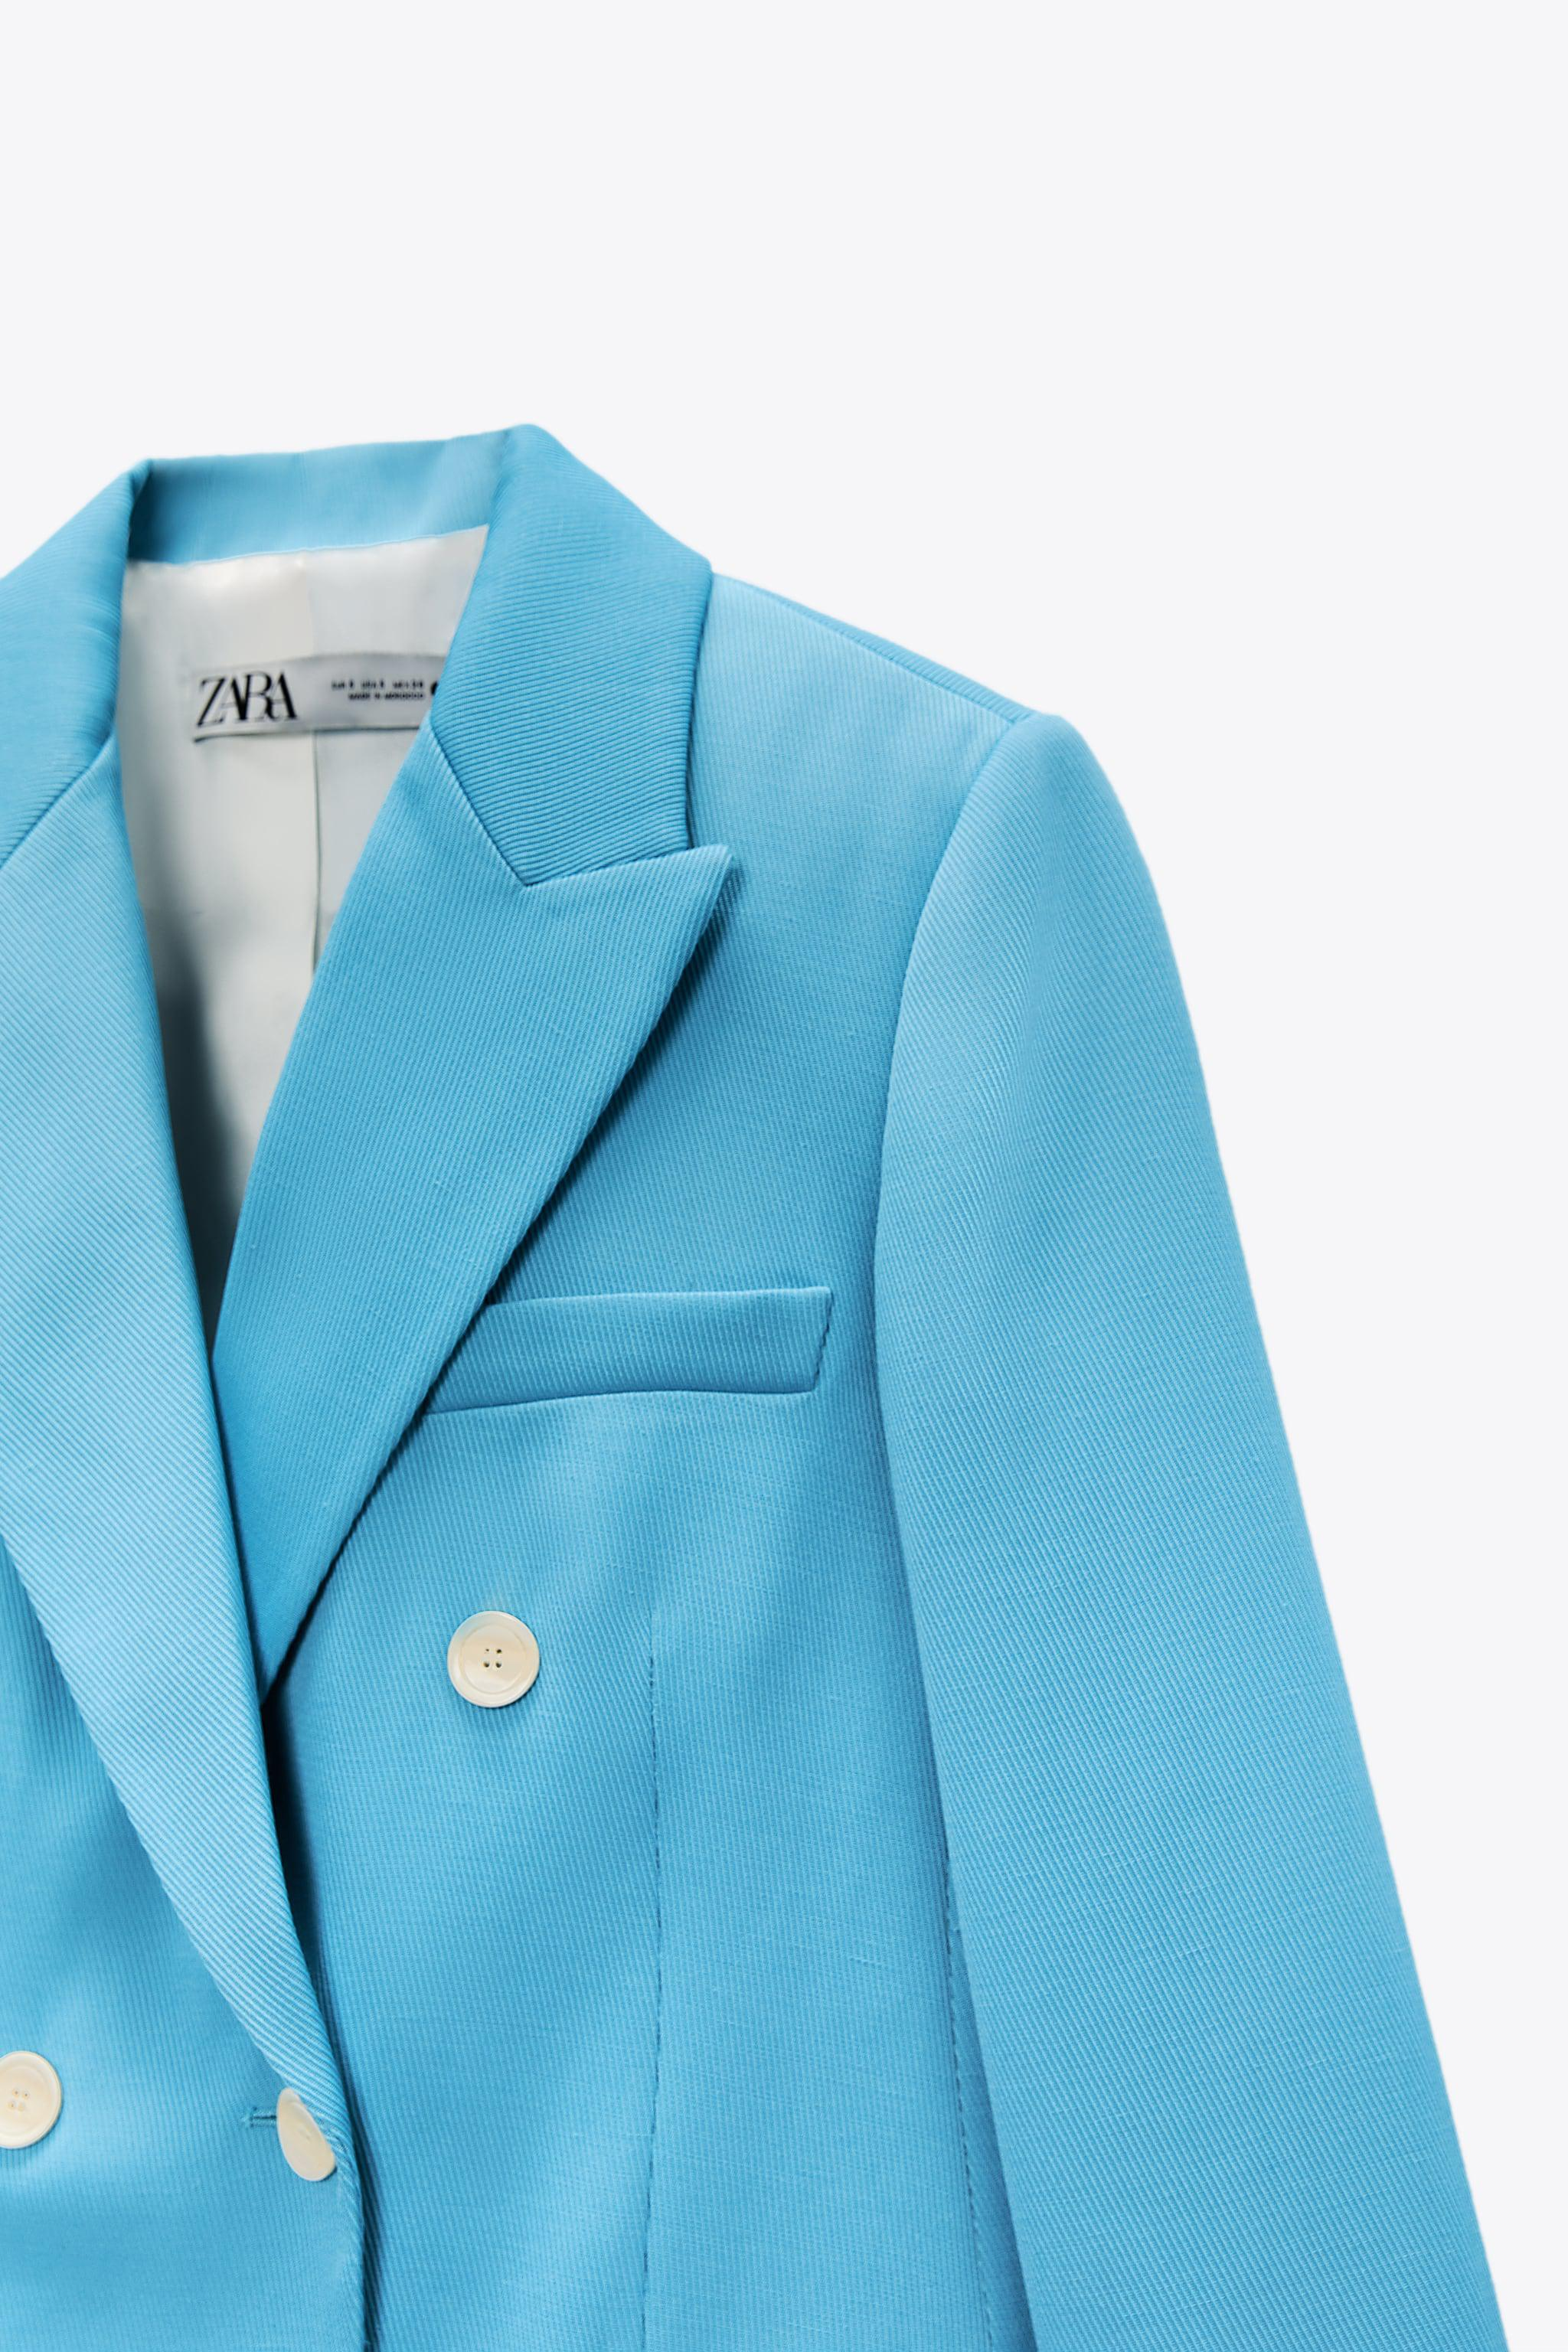 DOUBLE BREASTED BLAZER WITH POCKETS 4